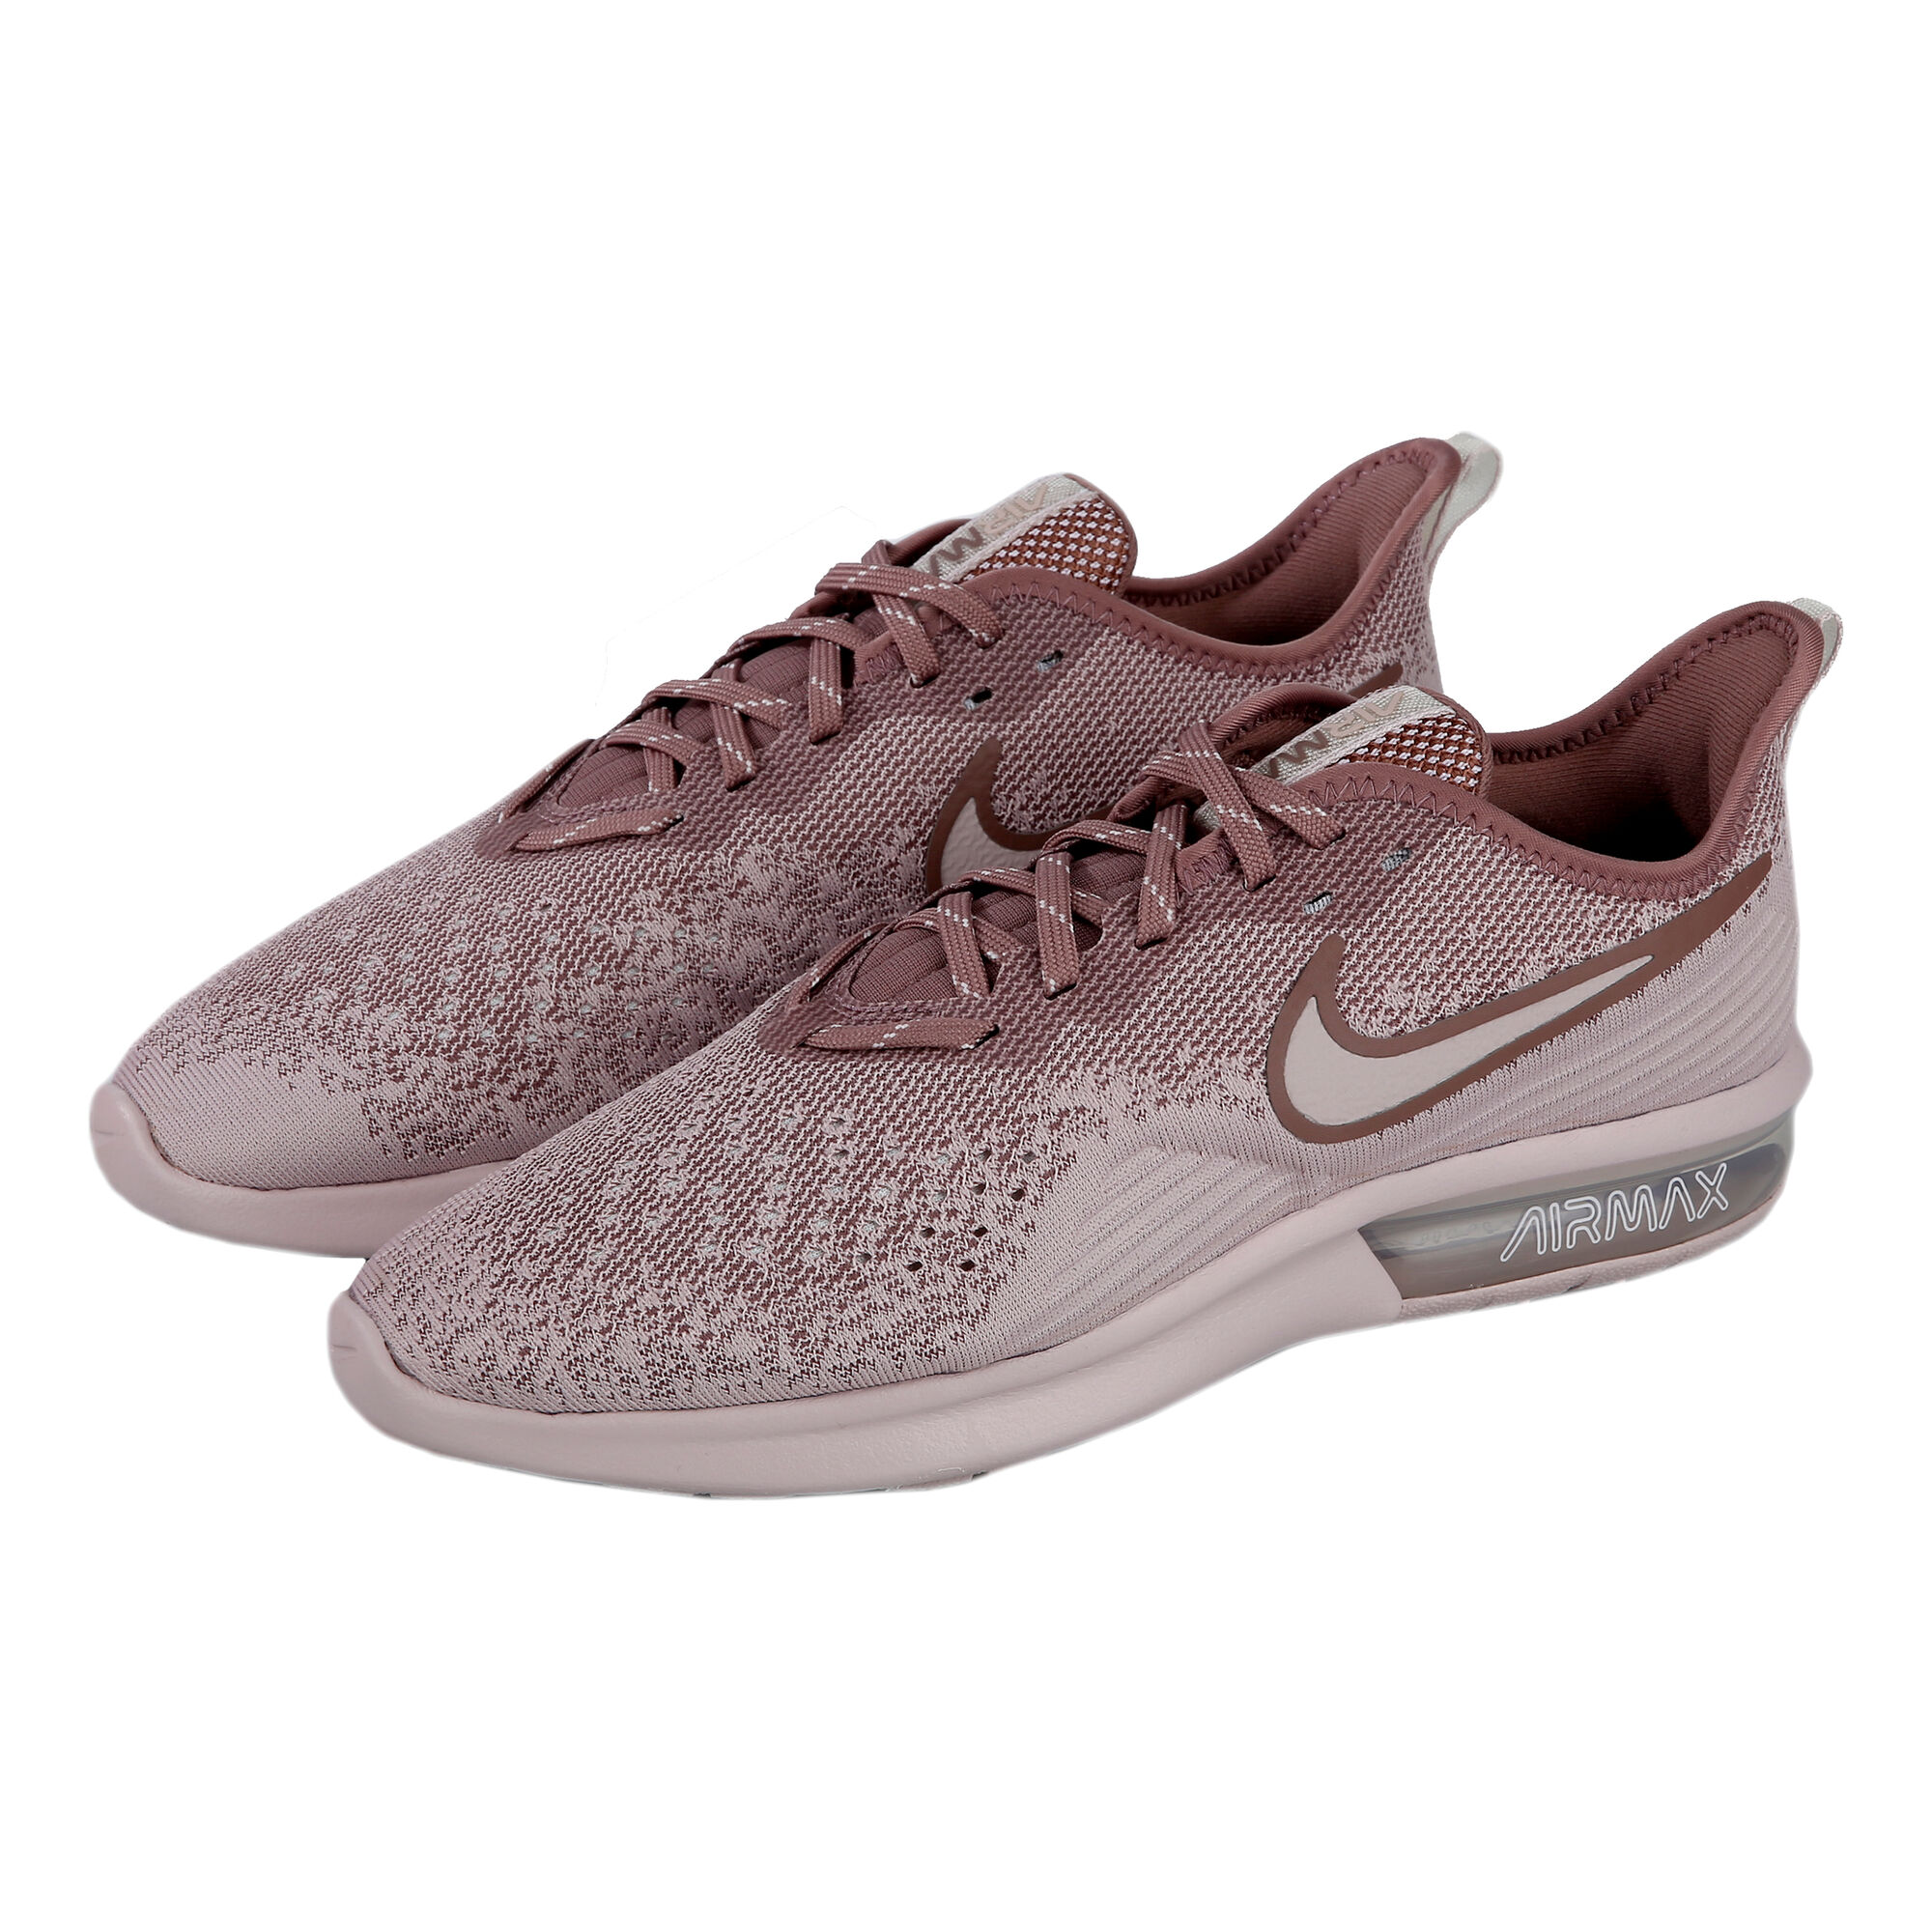 299626c0976cd1 ... Nike · Nike · Nike · Nike · Nike · Nike. Air Max Sequent 4 Women ...